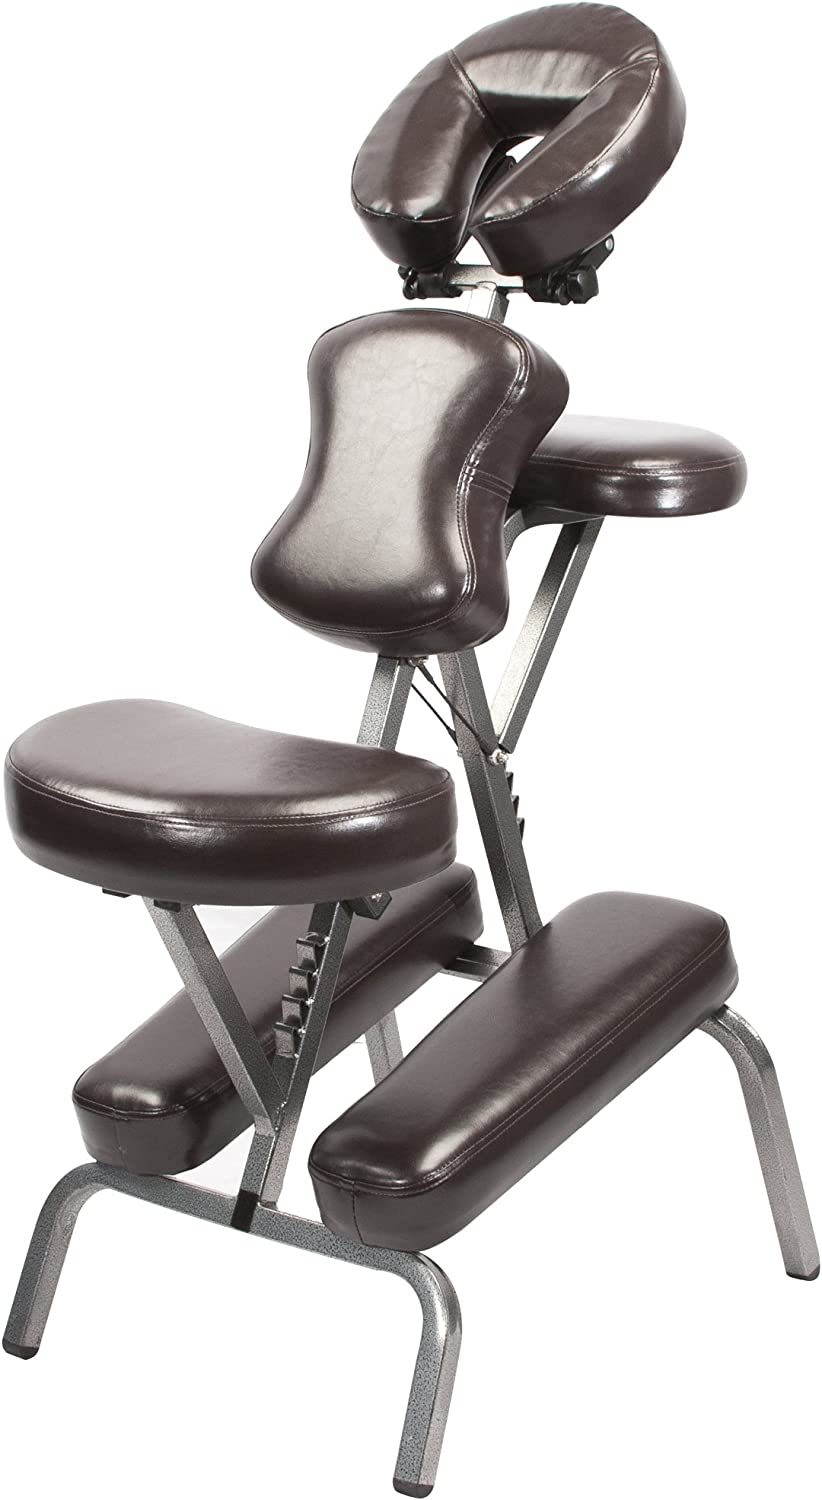 Master Massage Master Massage Bedford Portable Massage Chair Package, Blue: Health & Personal Care